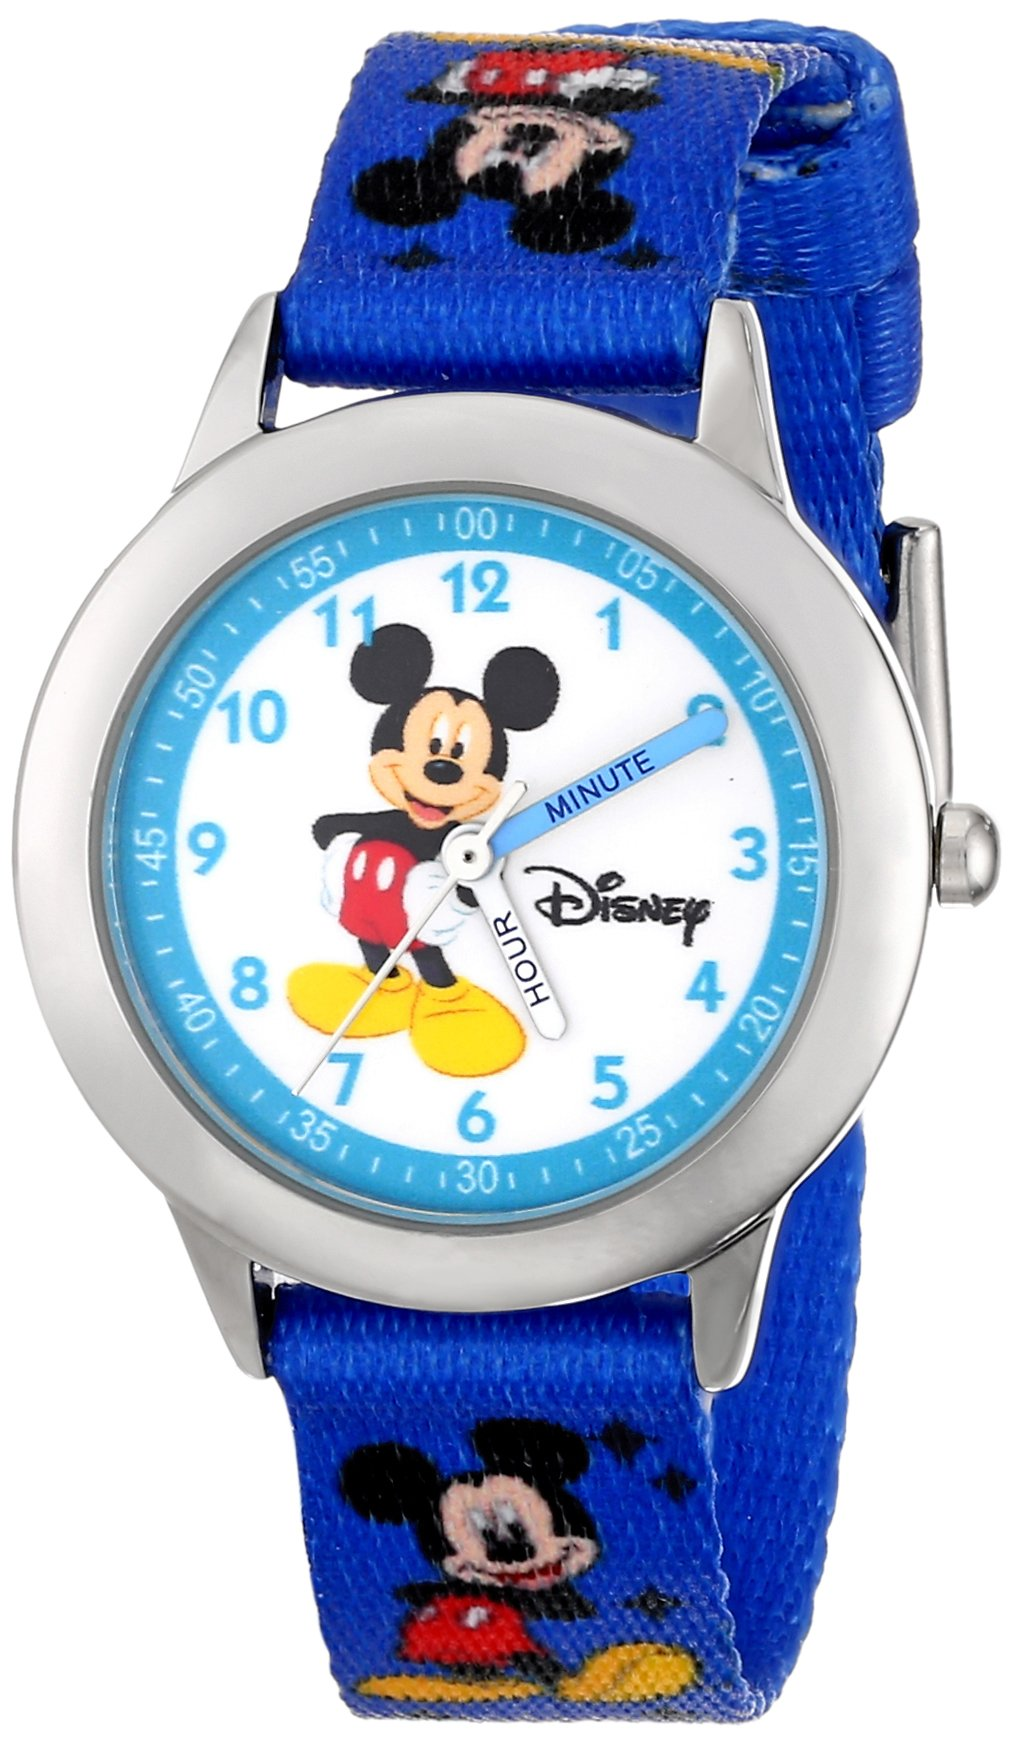 Disney Kids' W000014 ''Time Teacher'' Mickey Mouse Stainless Steel Watch With Printed Nylon Band